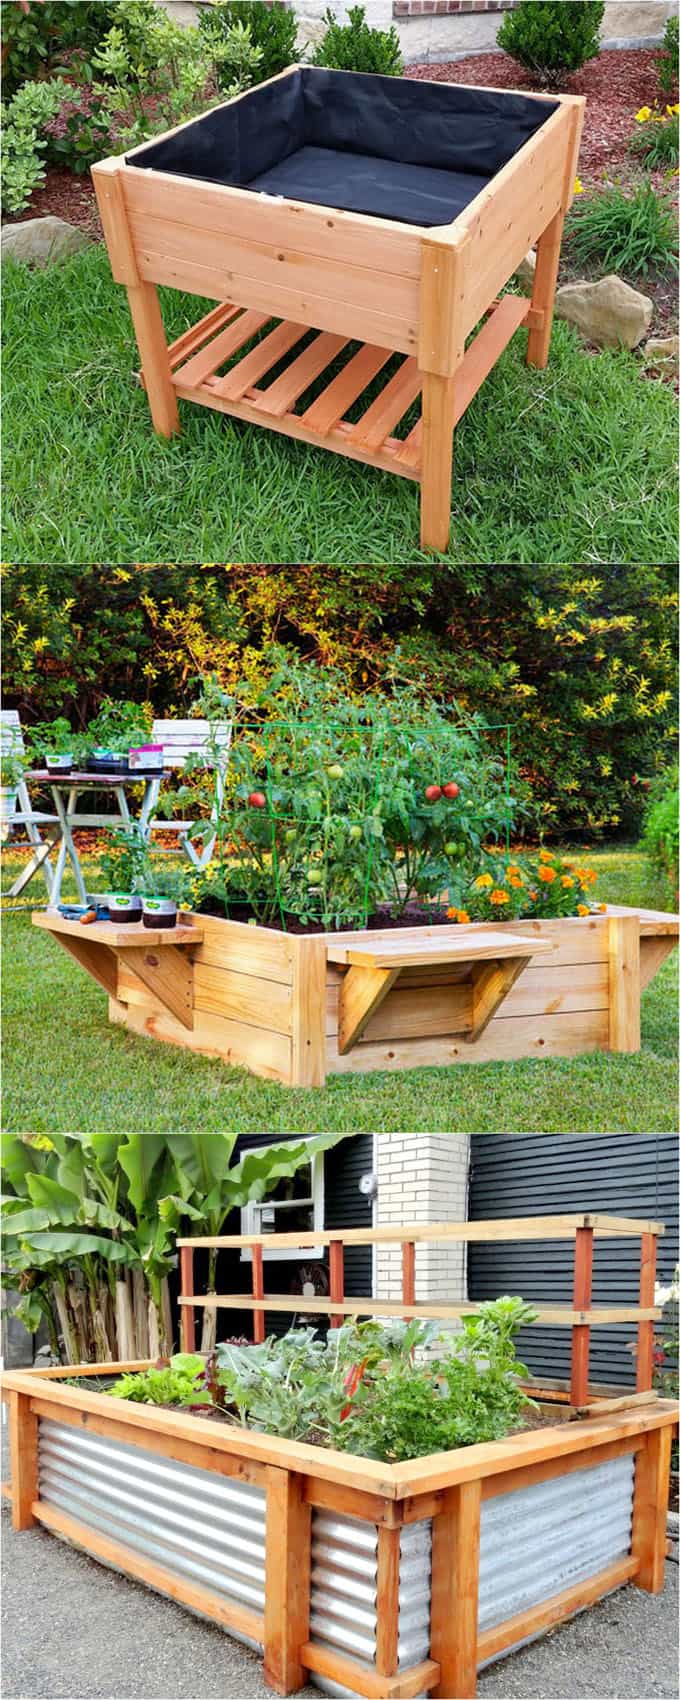 28 Best DIY raised bed gardens, easy to build using inexpensive simple materials. Great tutorials on how to build productive raised beds to grow vegetables and flowers. Plus many ideas on heights and design variations! - A Piece of Rainbow #backyard #gardens #gardening #gardeningtips #urbangardening #gardendesign #gardenideas #containergardening #DIY #homestead #homesteading #gardeningtips #upcycle #upcycling #woodworkingprojects #woodworkingplans